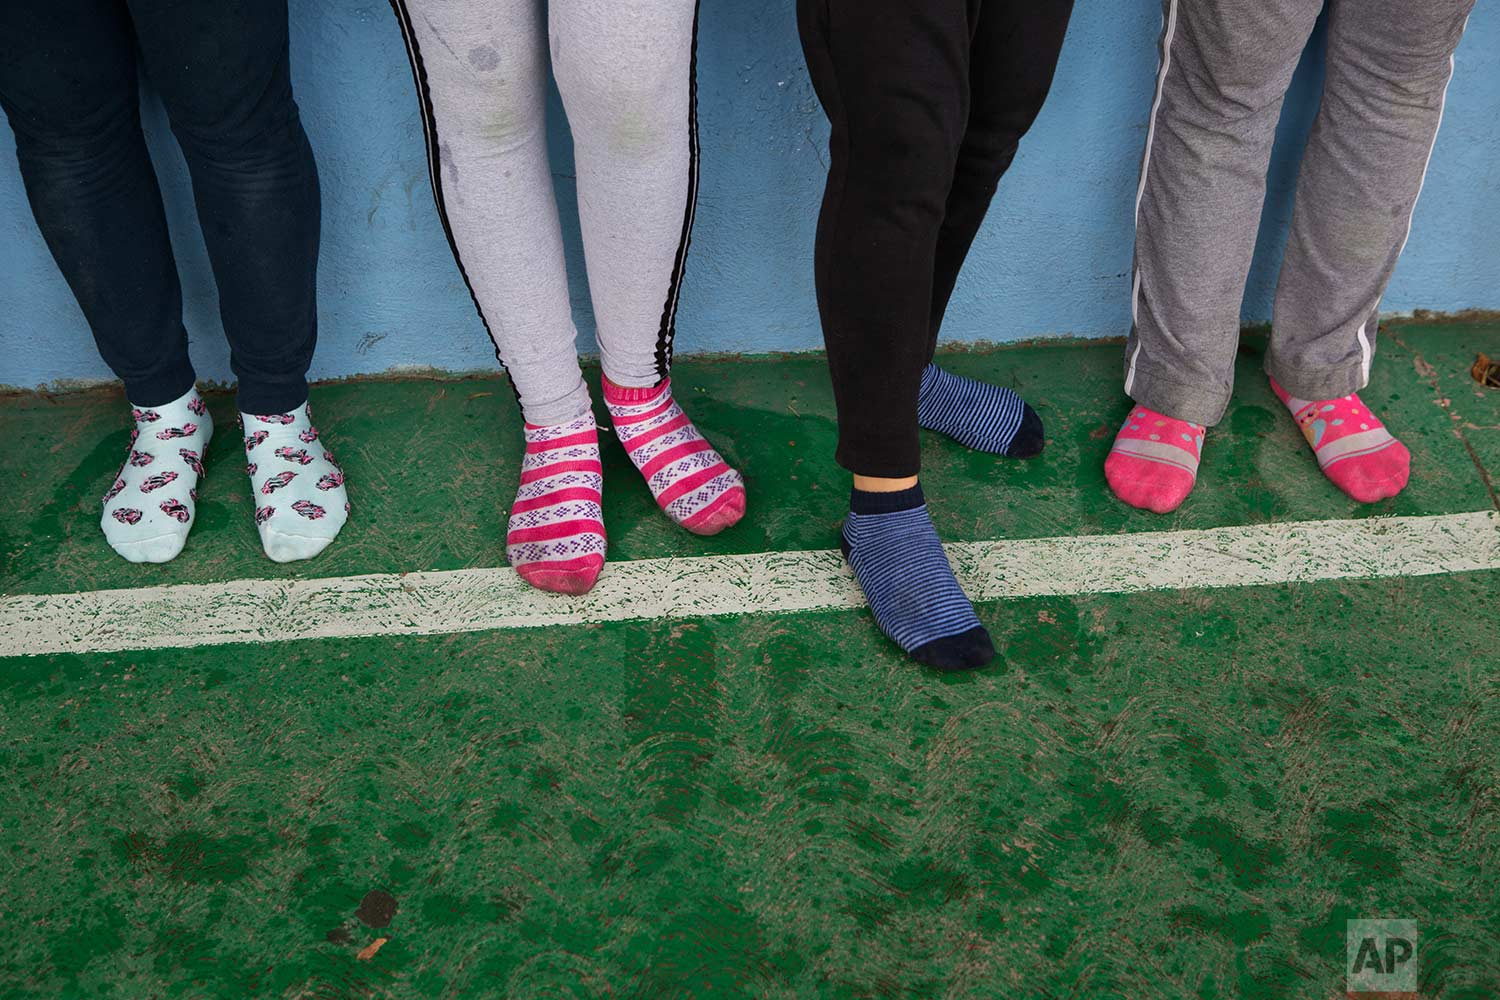 In this Aug. 25, 2017 photo, female nursing students stand in their socks as they take a self-defense workshop led by Muay Thai practitioners in Nezahualcoyotl, Mexico state. (AP Photo/Rebecca Blackwell)